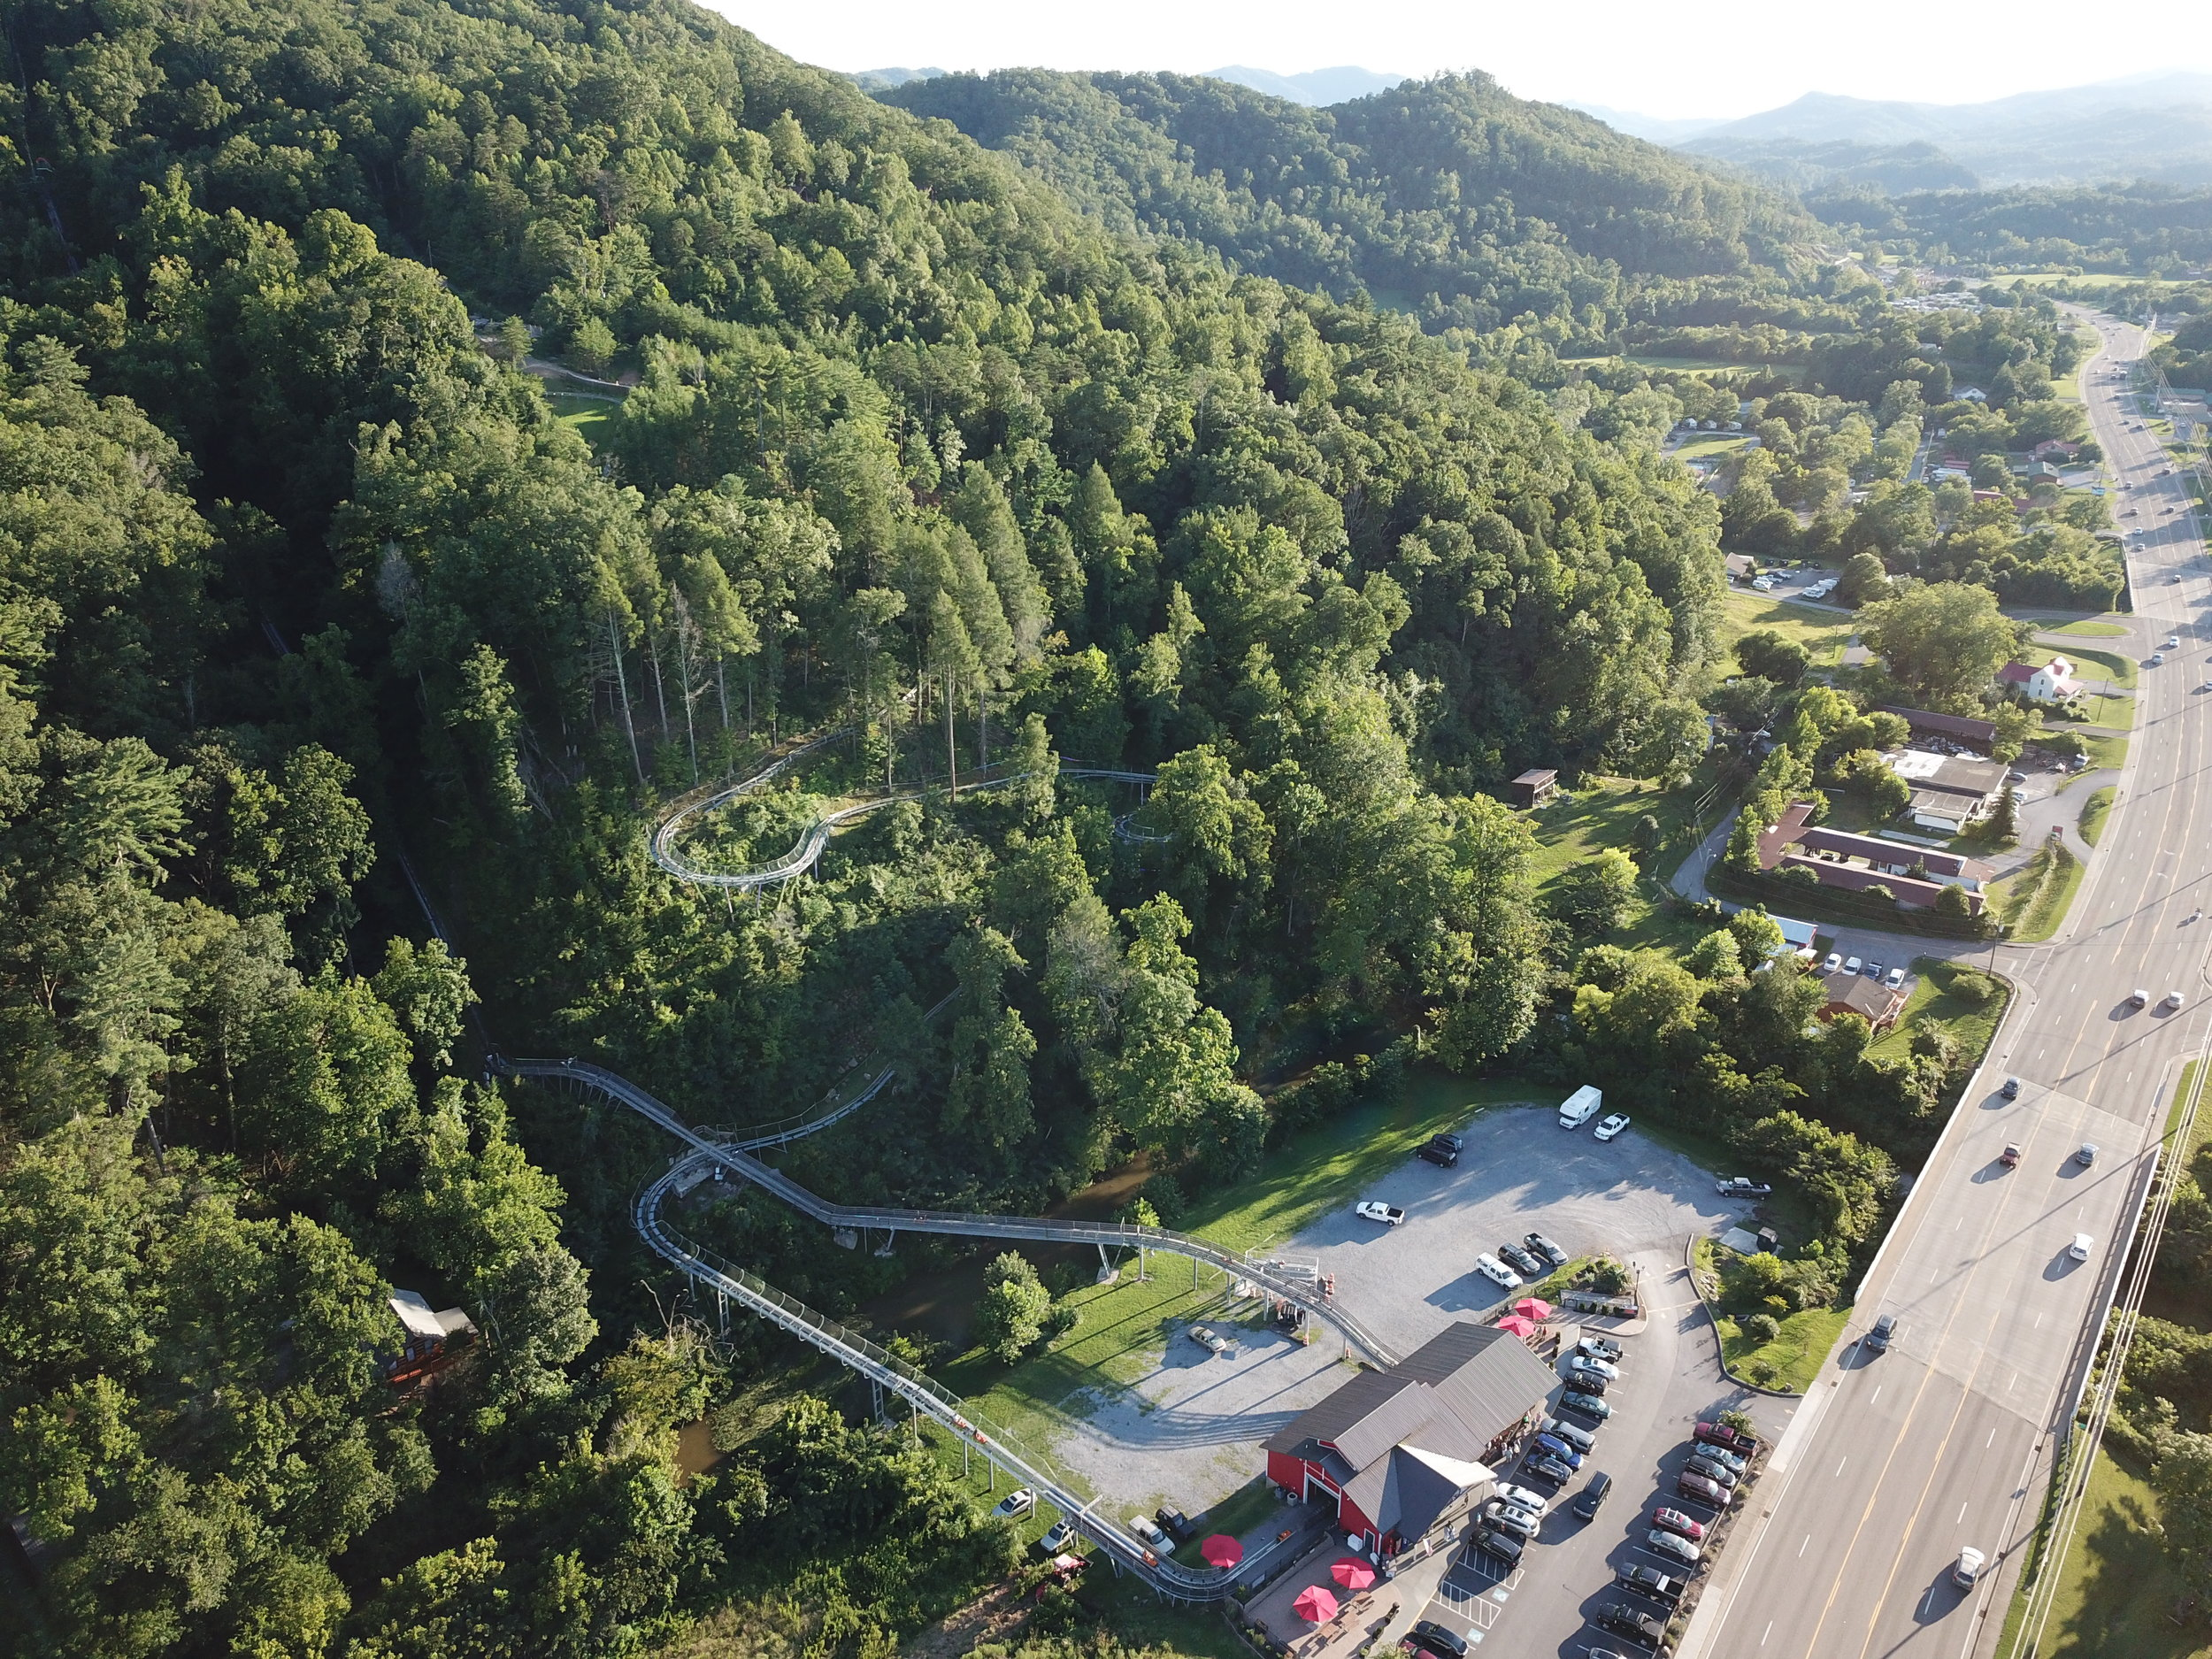 The Great Smokey Mountain Alpine Coaster in Pigeon Forge, TN. Can you spot Imua in this picture?